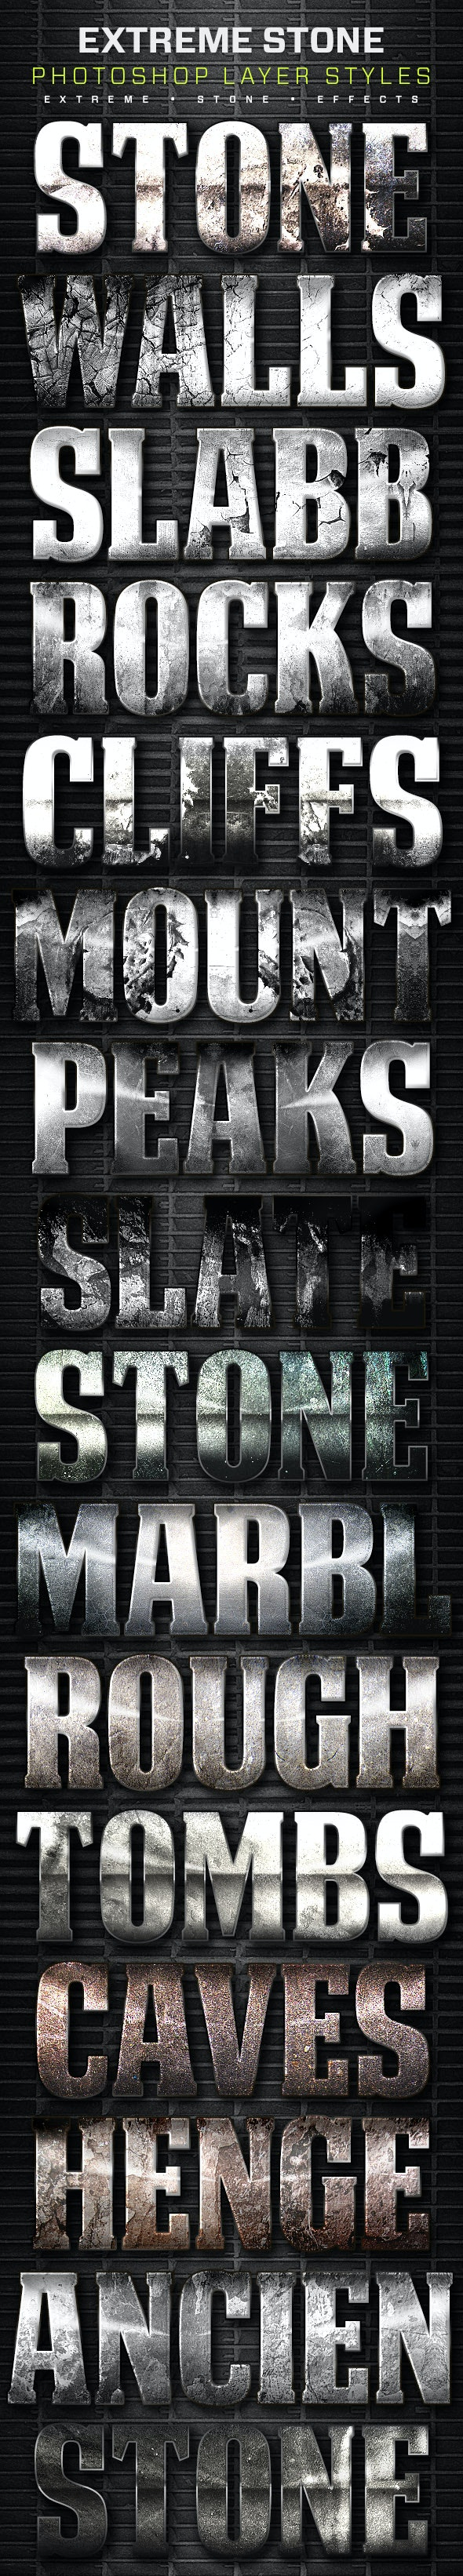 16 Extreme Stone Layer Styles Volume 8 - Text Effects Styles